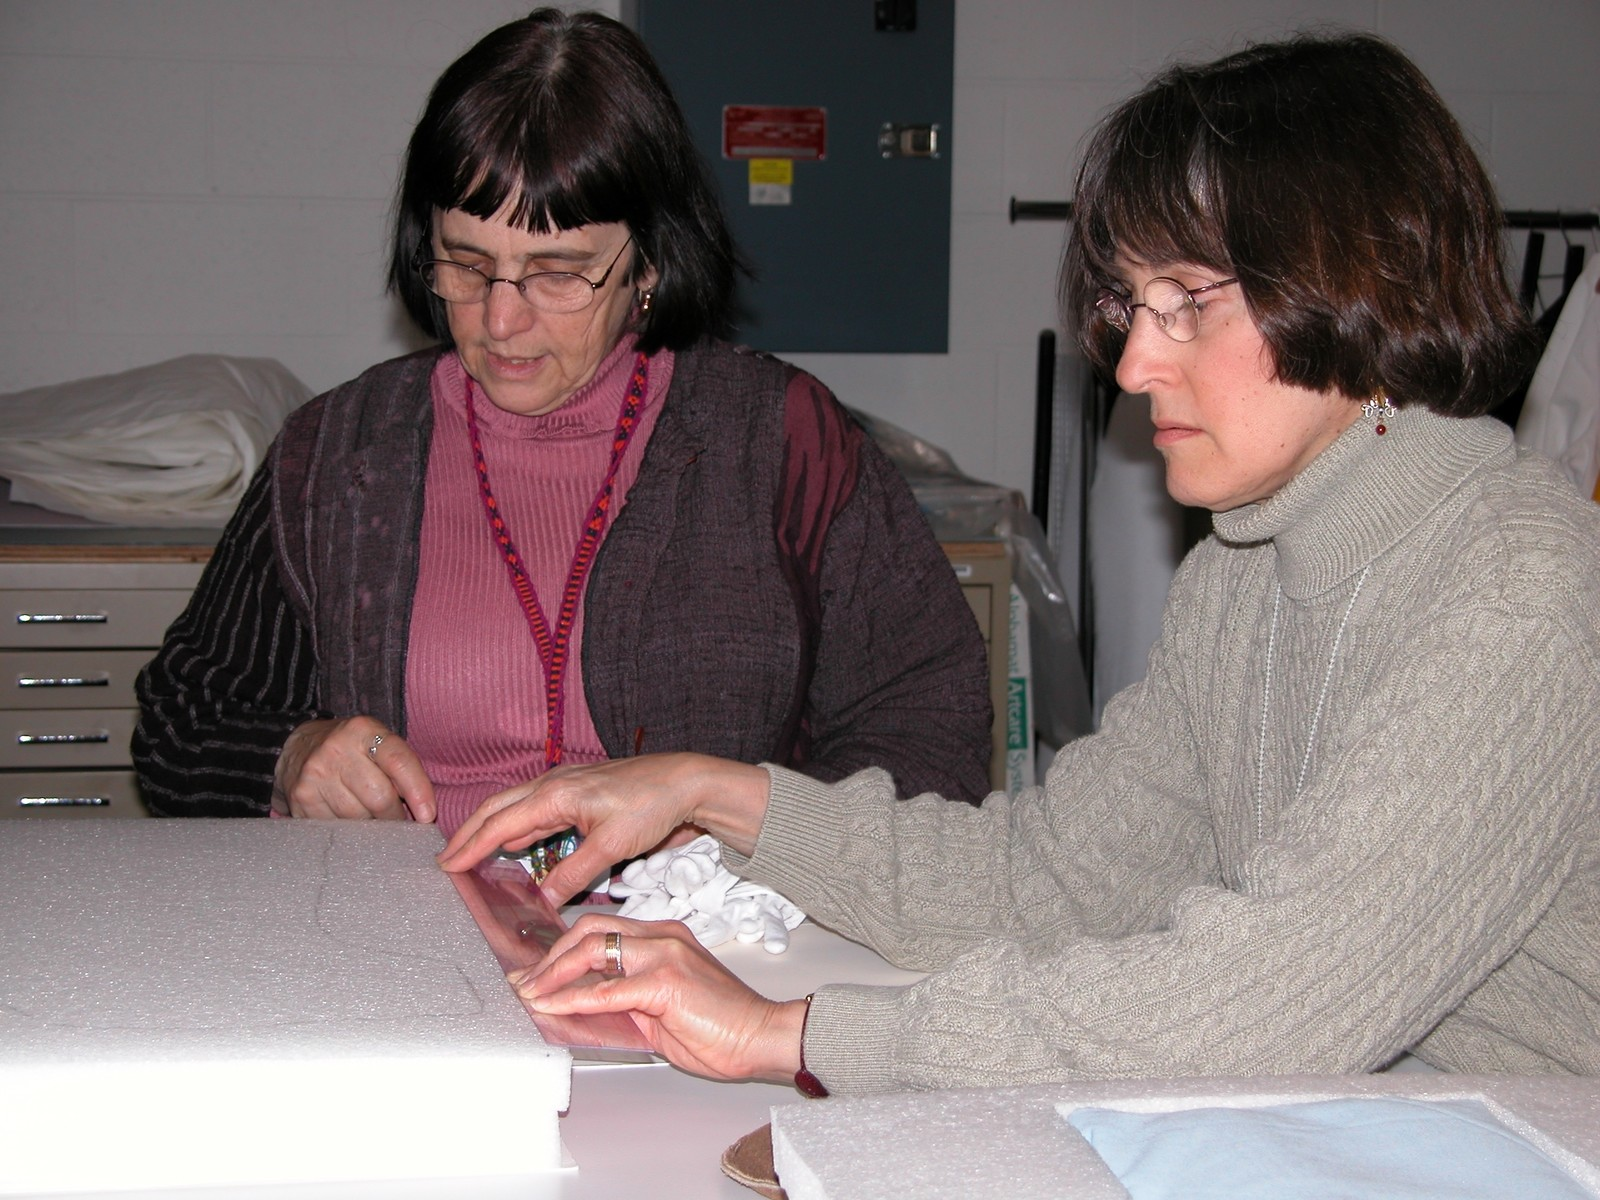 Textile conservators Lizou Fenyvesi and Gail Singer prepare a mount to display a dress worn by a Jewish child while living in hiding in Poland during World War II.  The dress was donated to the U.S. Holocaust Memorial Museum by its owner, Lola Kaufman.